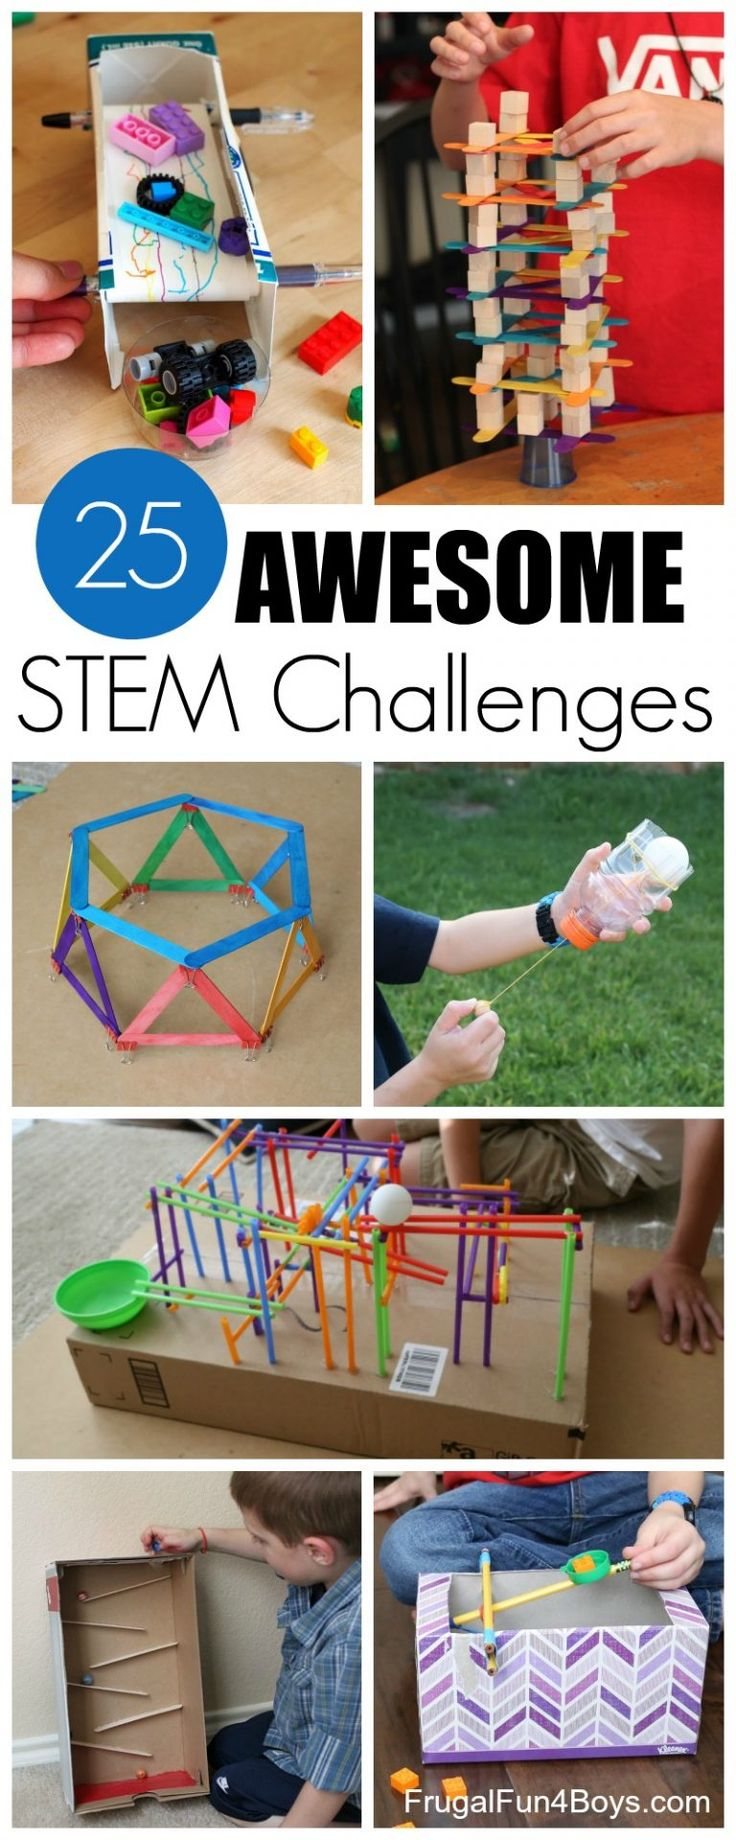 30+ Awesome STEM Challenges for Kids (with Inexpensive or Recycled Materials